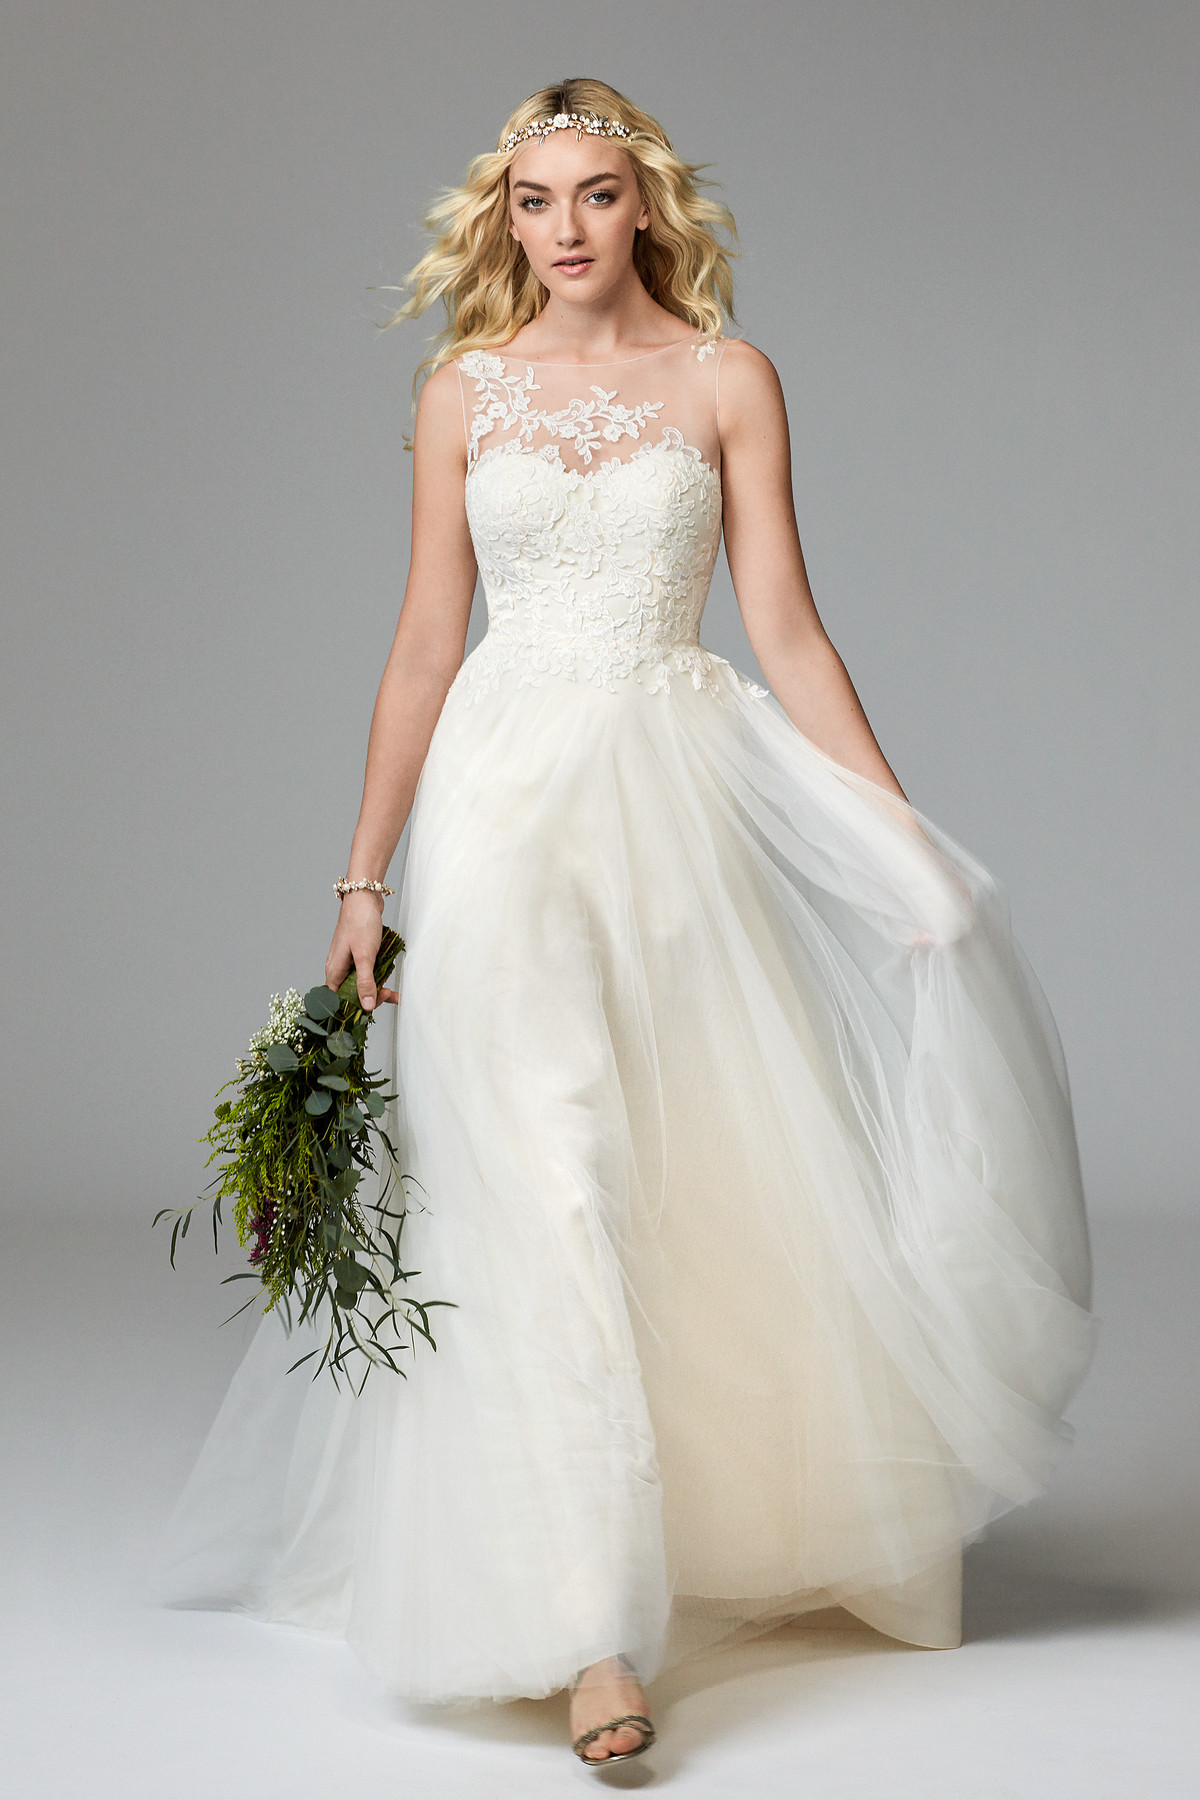 See-through Strap Lace Backless Wedding Dress | Bycouturier